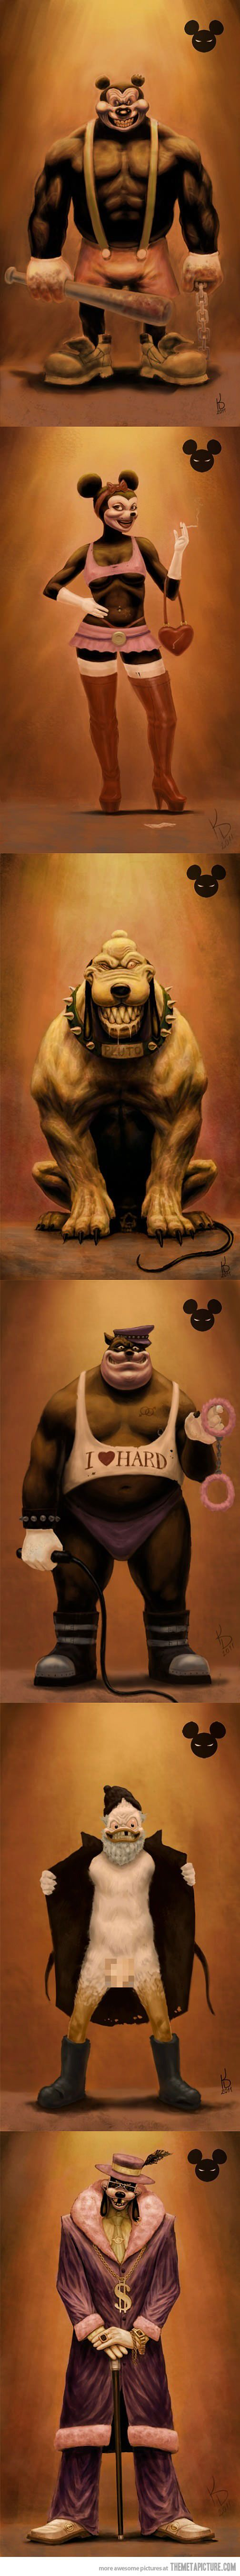 What if Disney's characters were bad